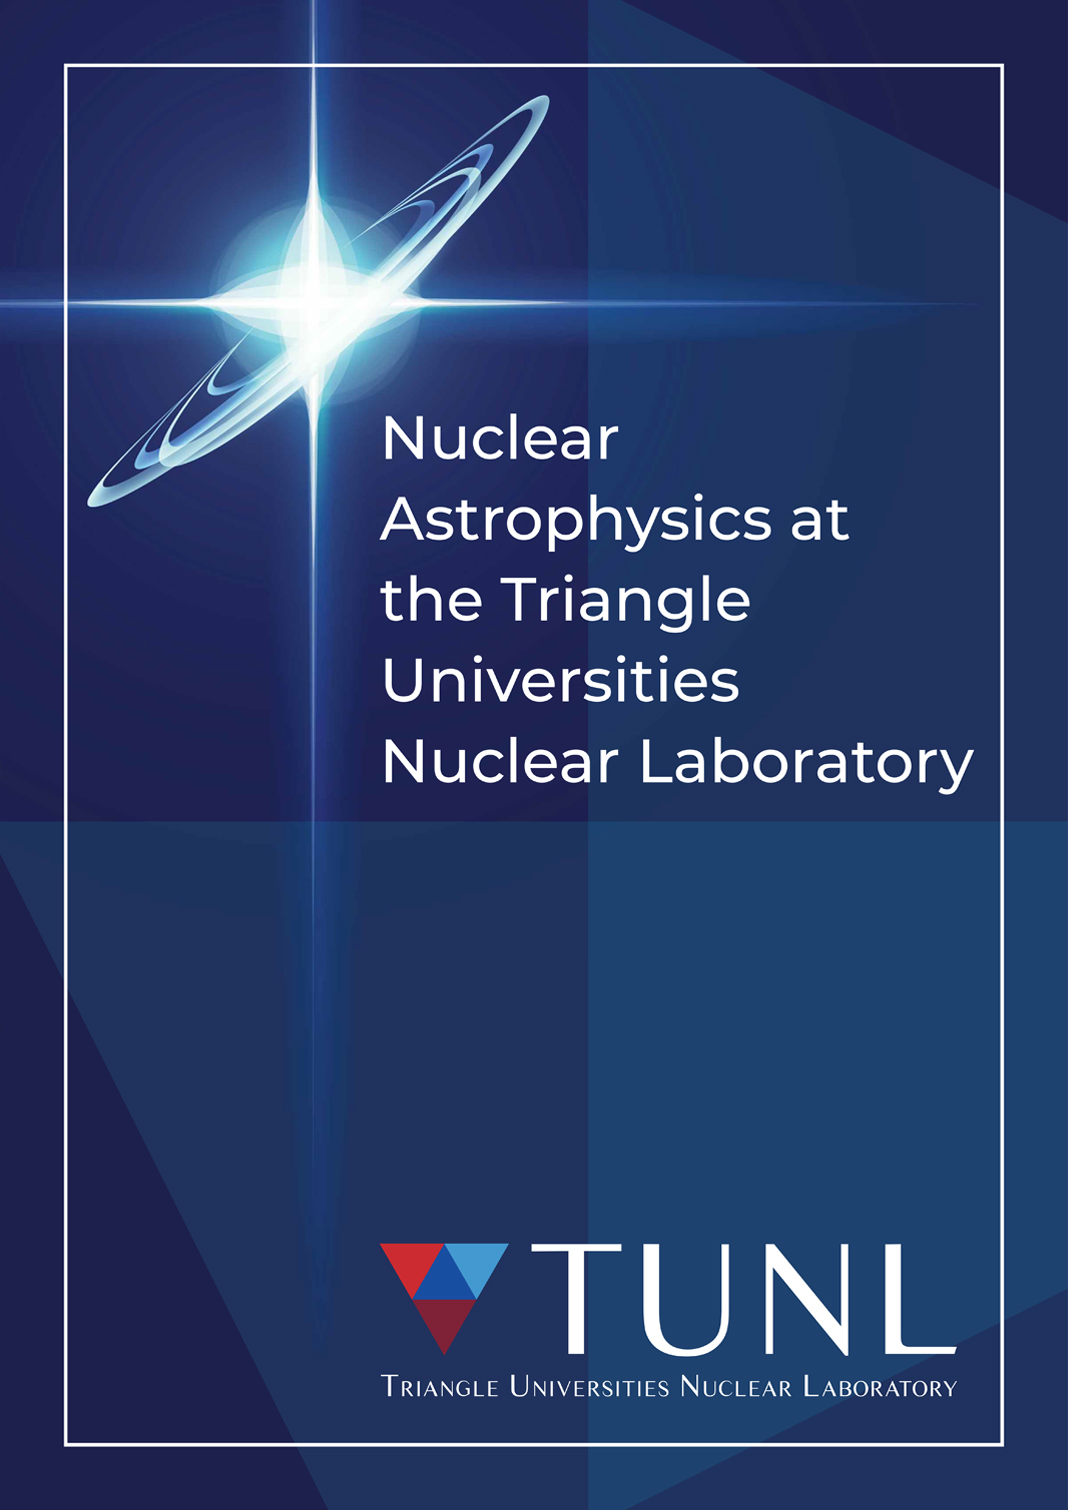 Nuclear astrophysics research at the Triangle Universities Nuclear Laboratory